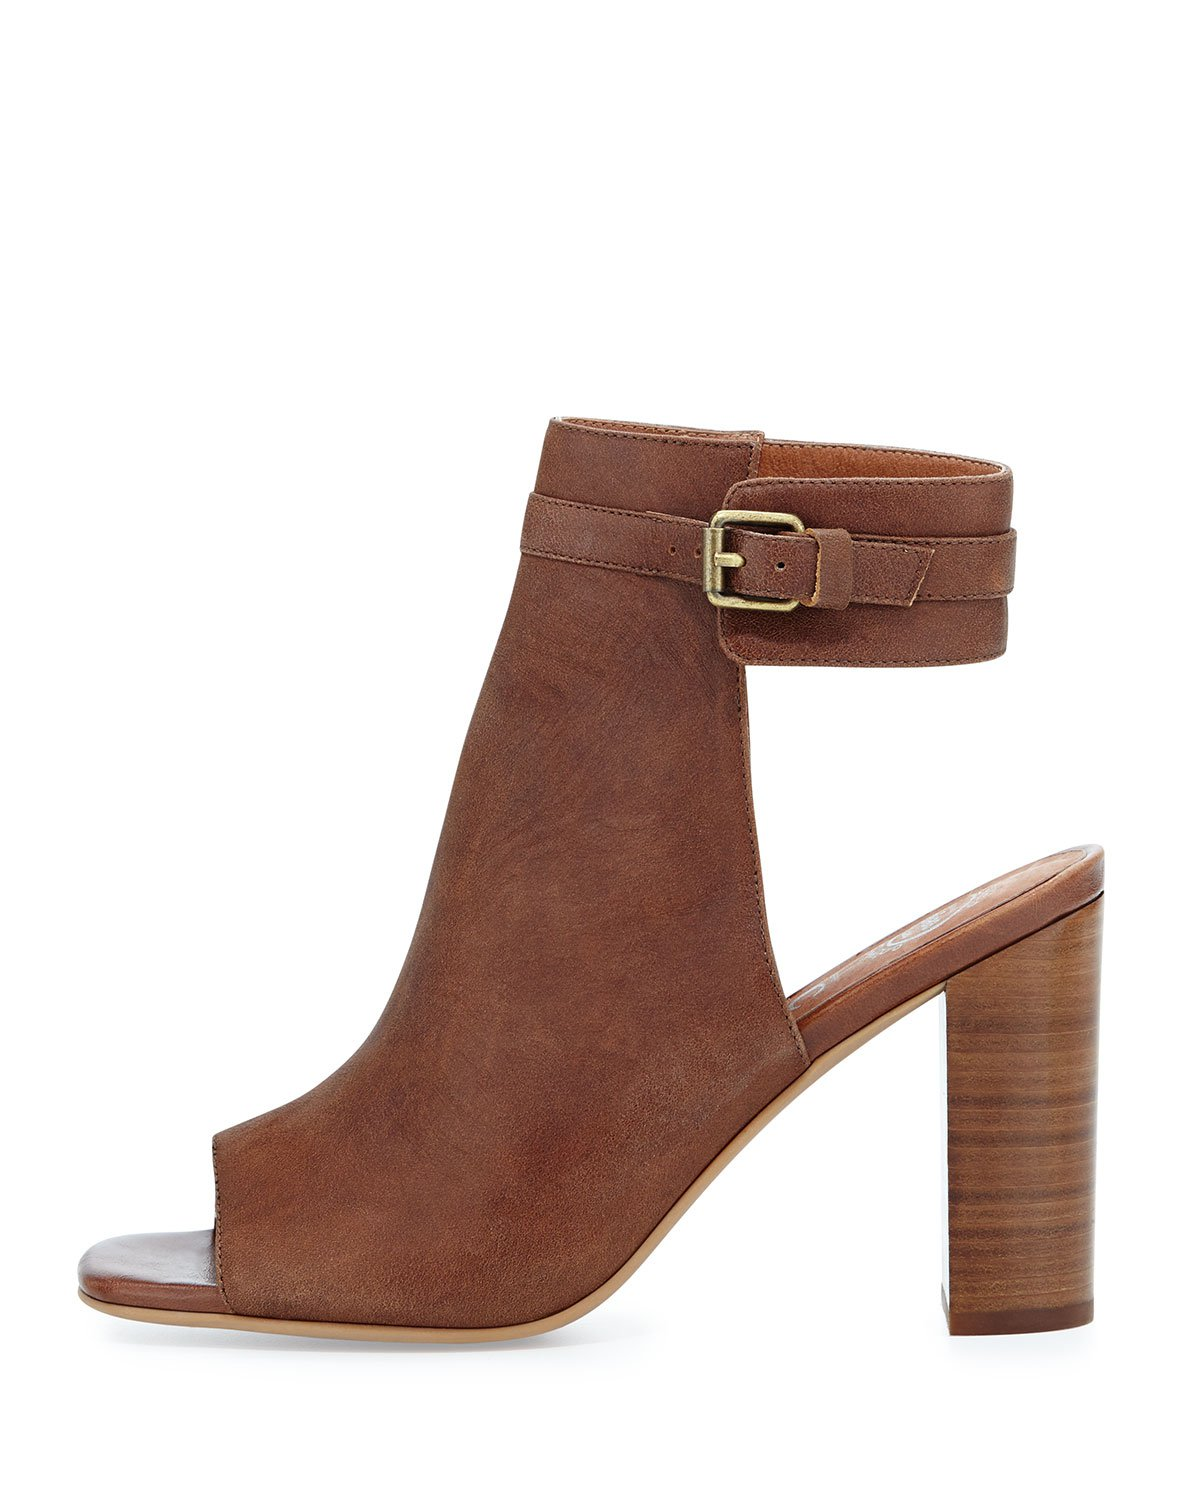 Jeffrey Campbell Brown Canal Leather Peep Toe Booties